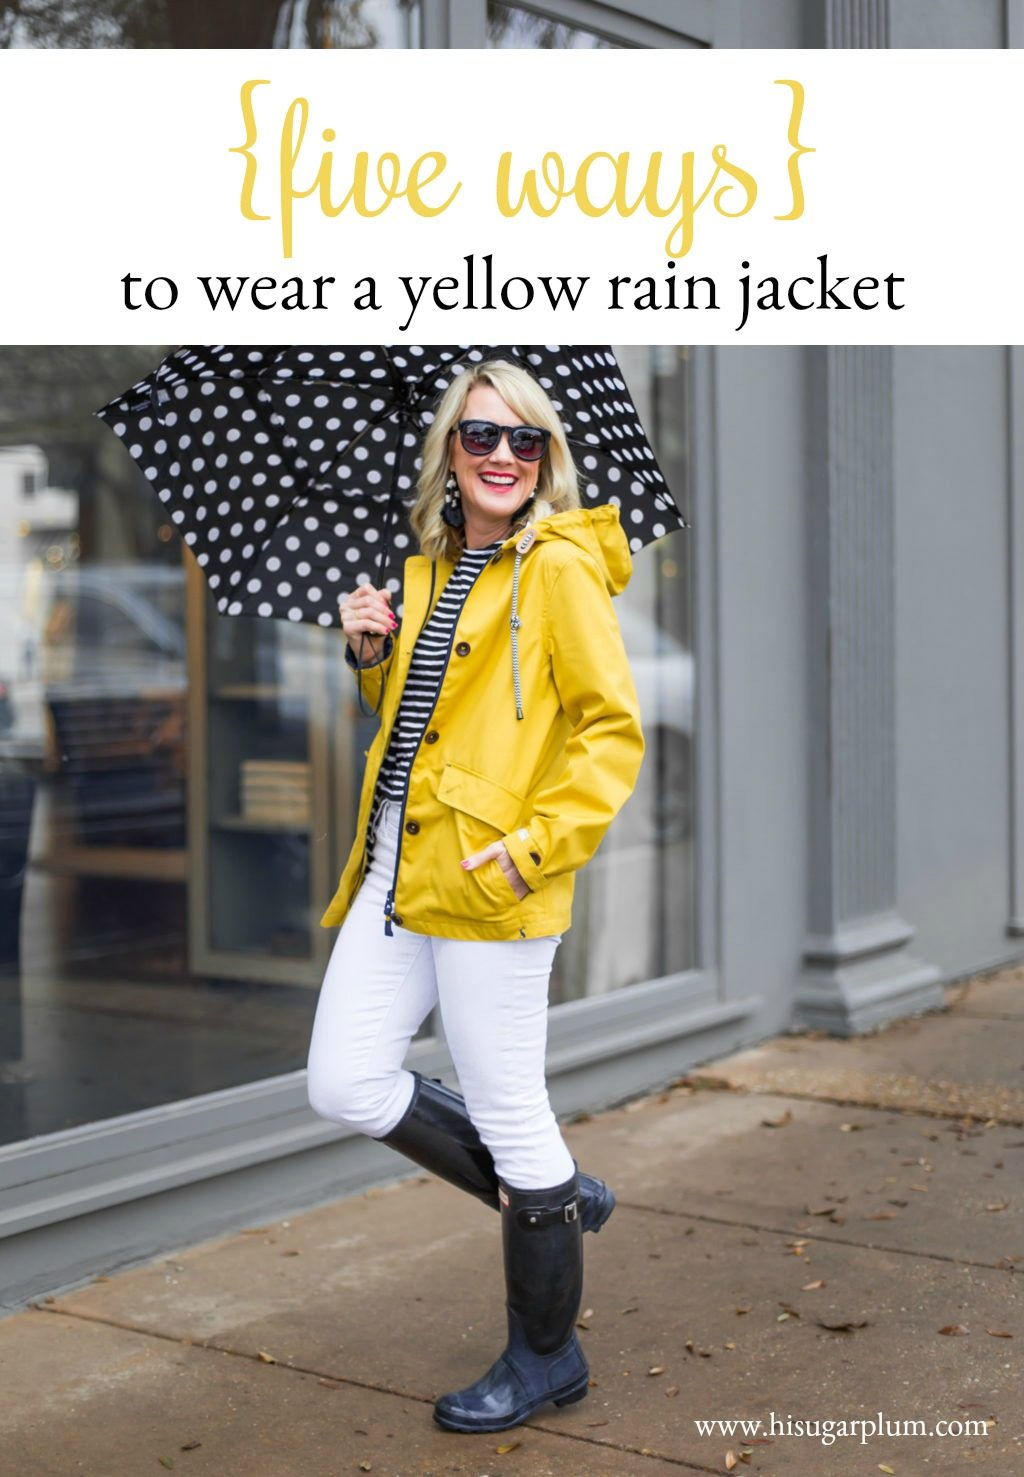 5 ways to wear a yellow rain jacket